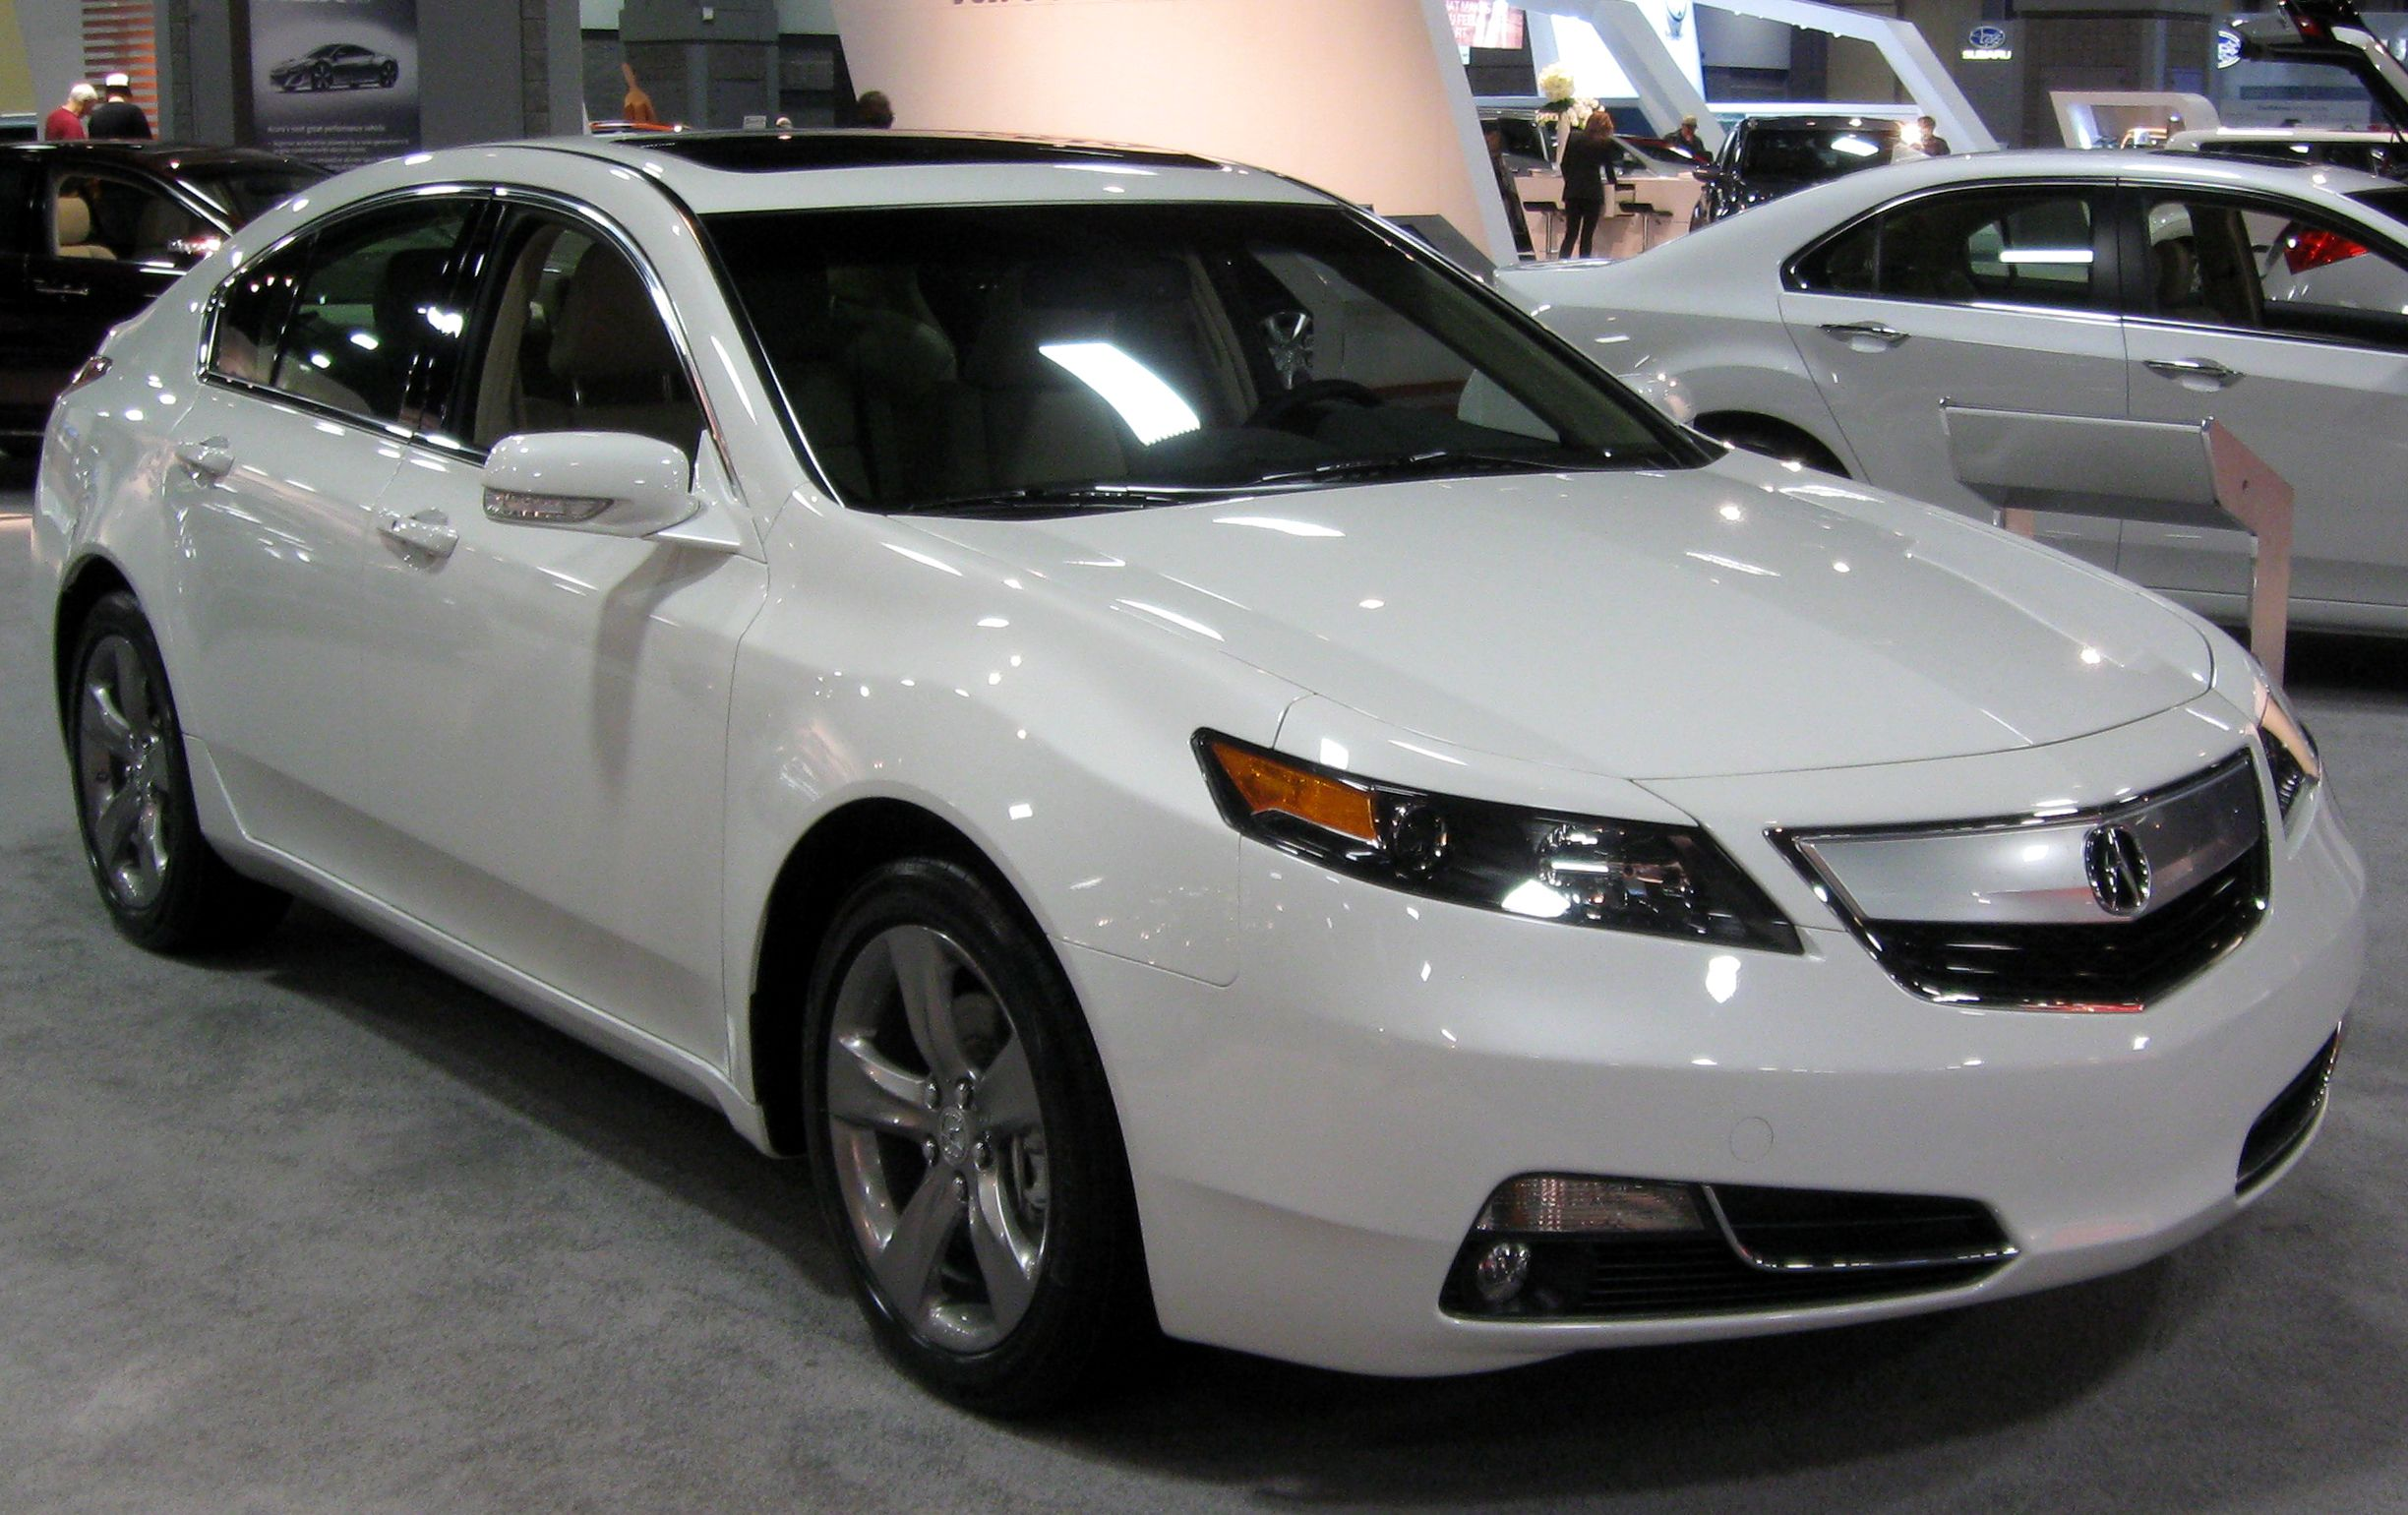 for file tl acura sale s wiki type wikipedia